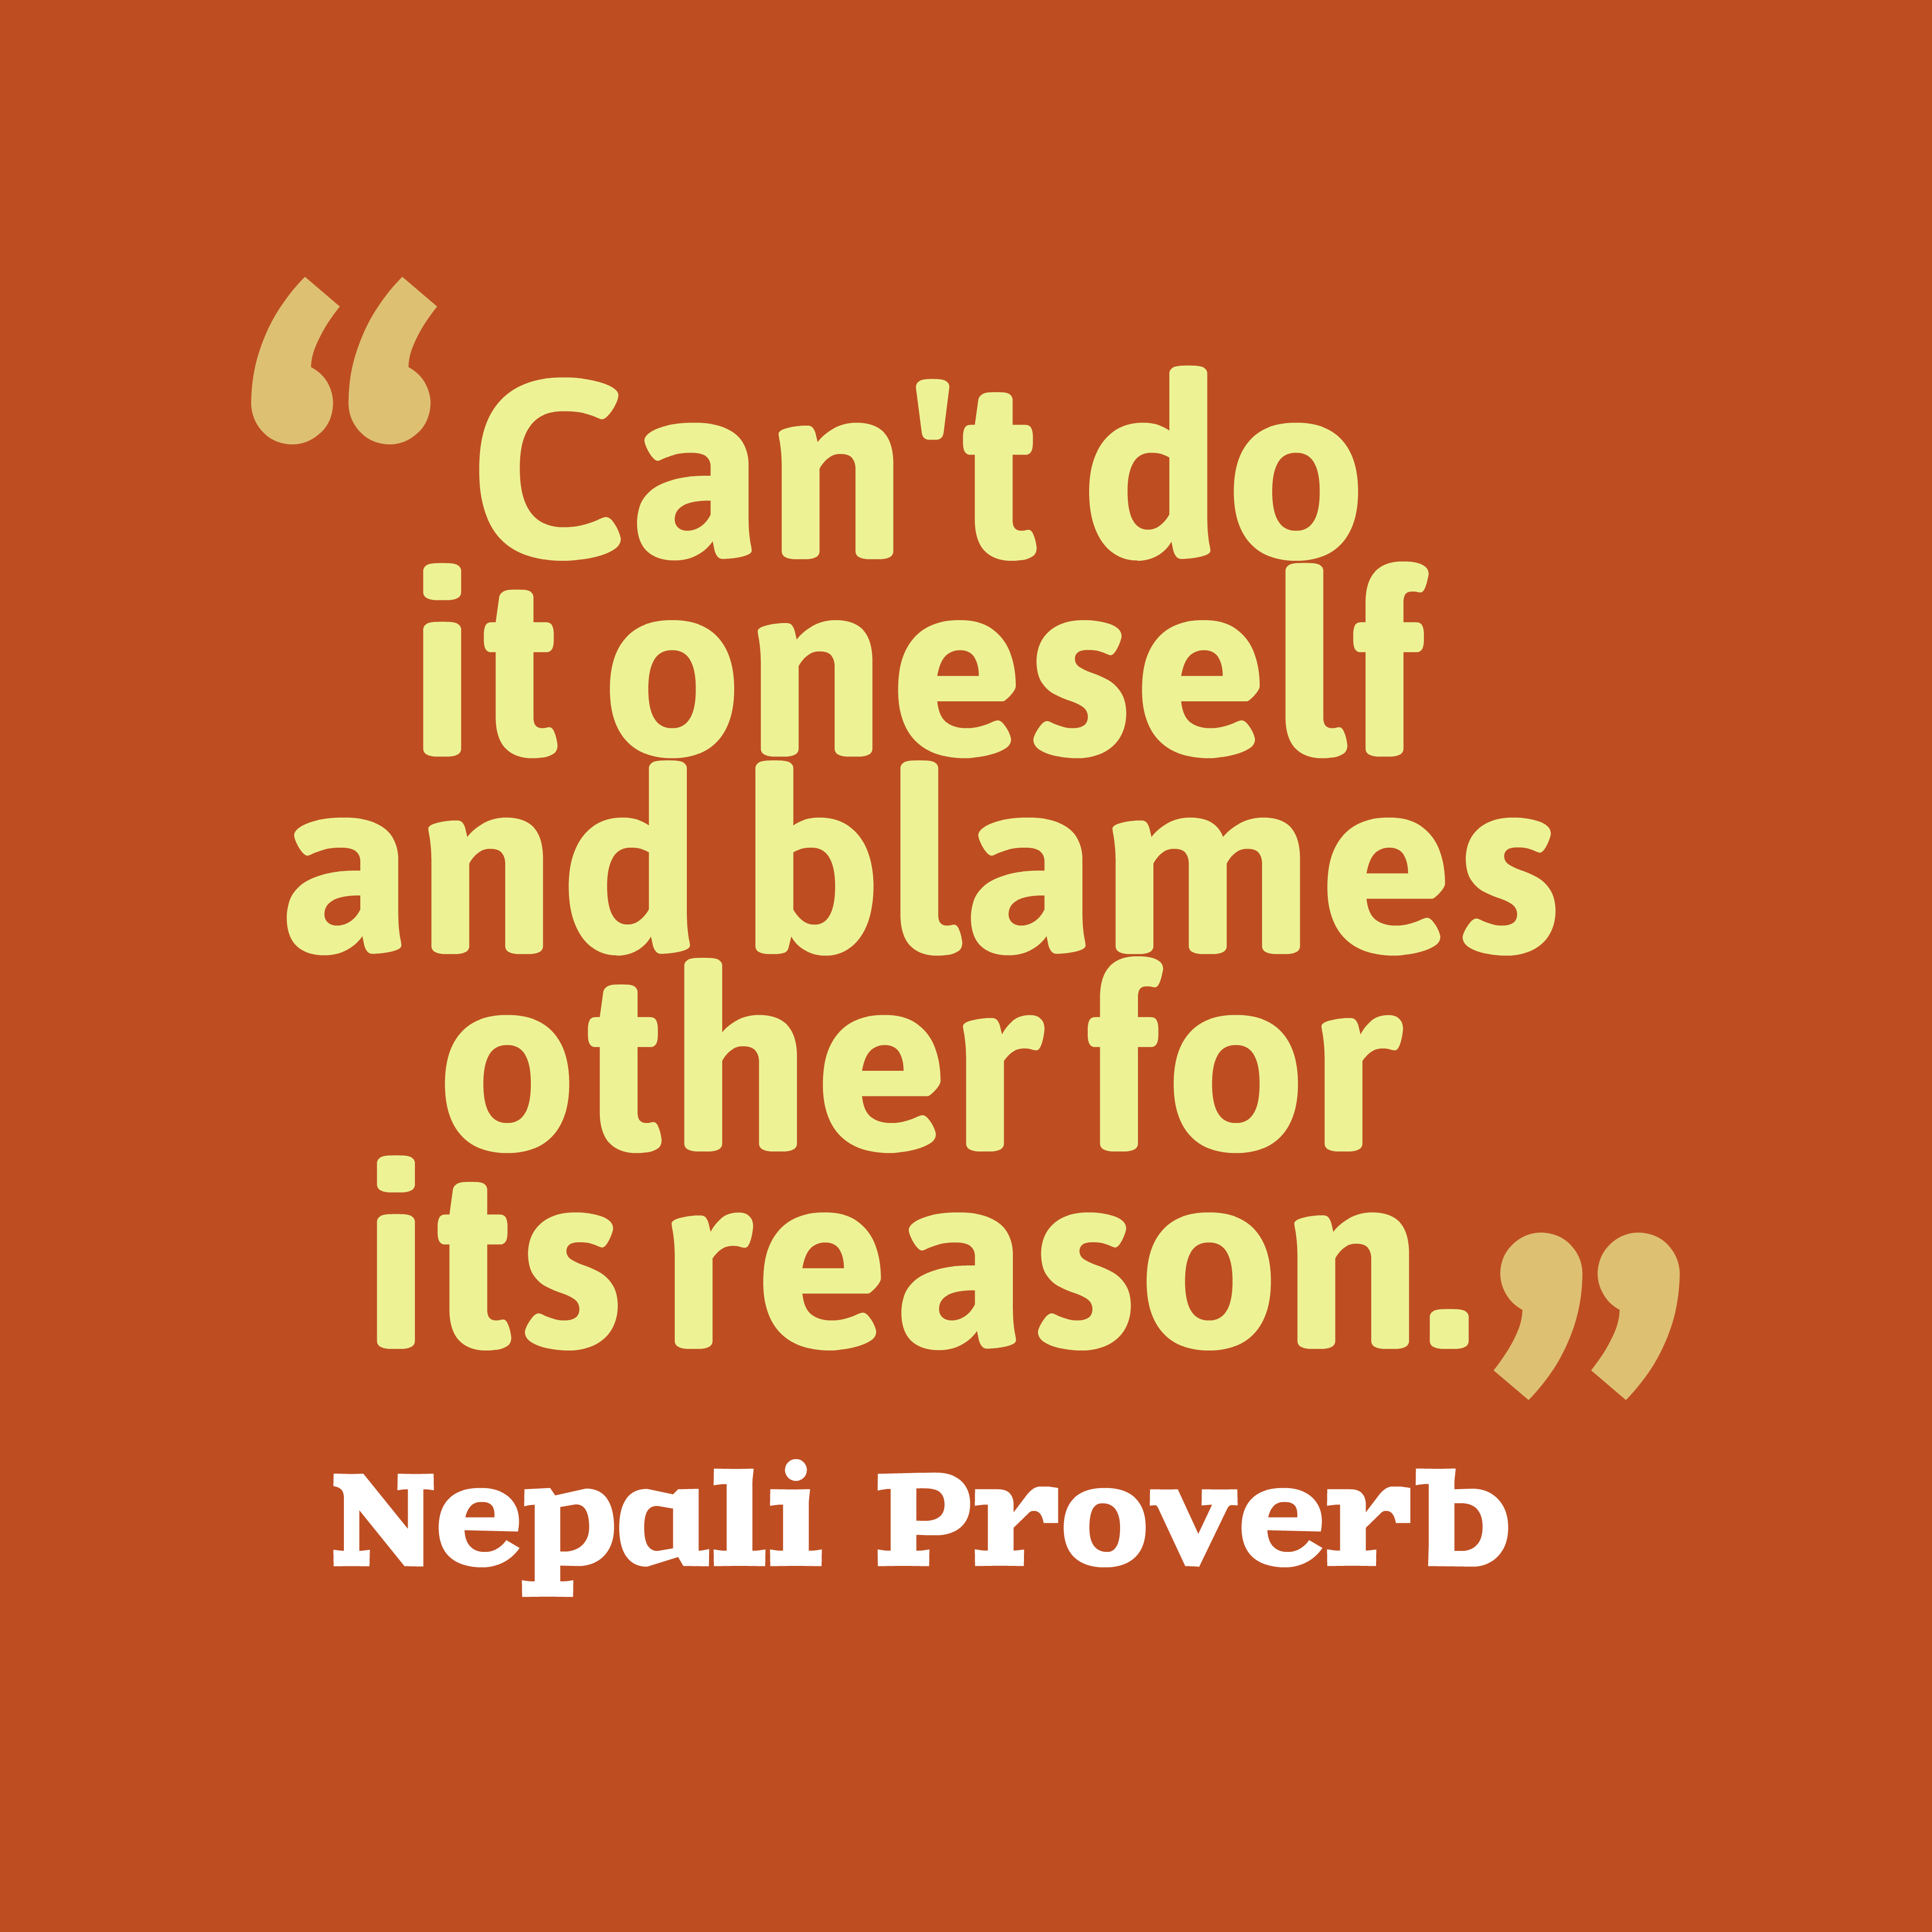 Love Quotes For Him In Nepali : Pics Photos - Nepali Love Quotes Http Kguff Com Quotes You Are In ...